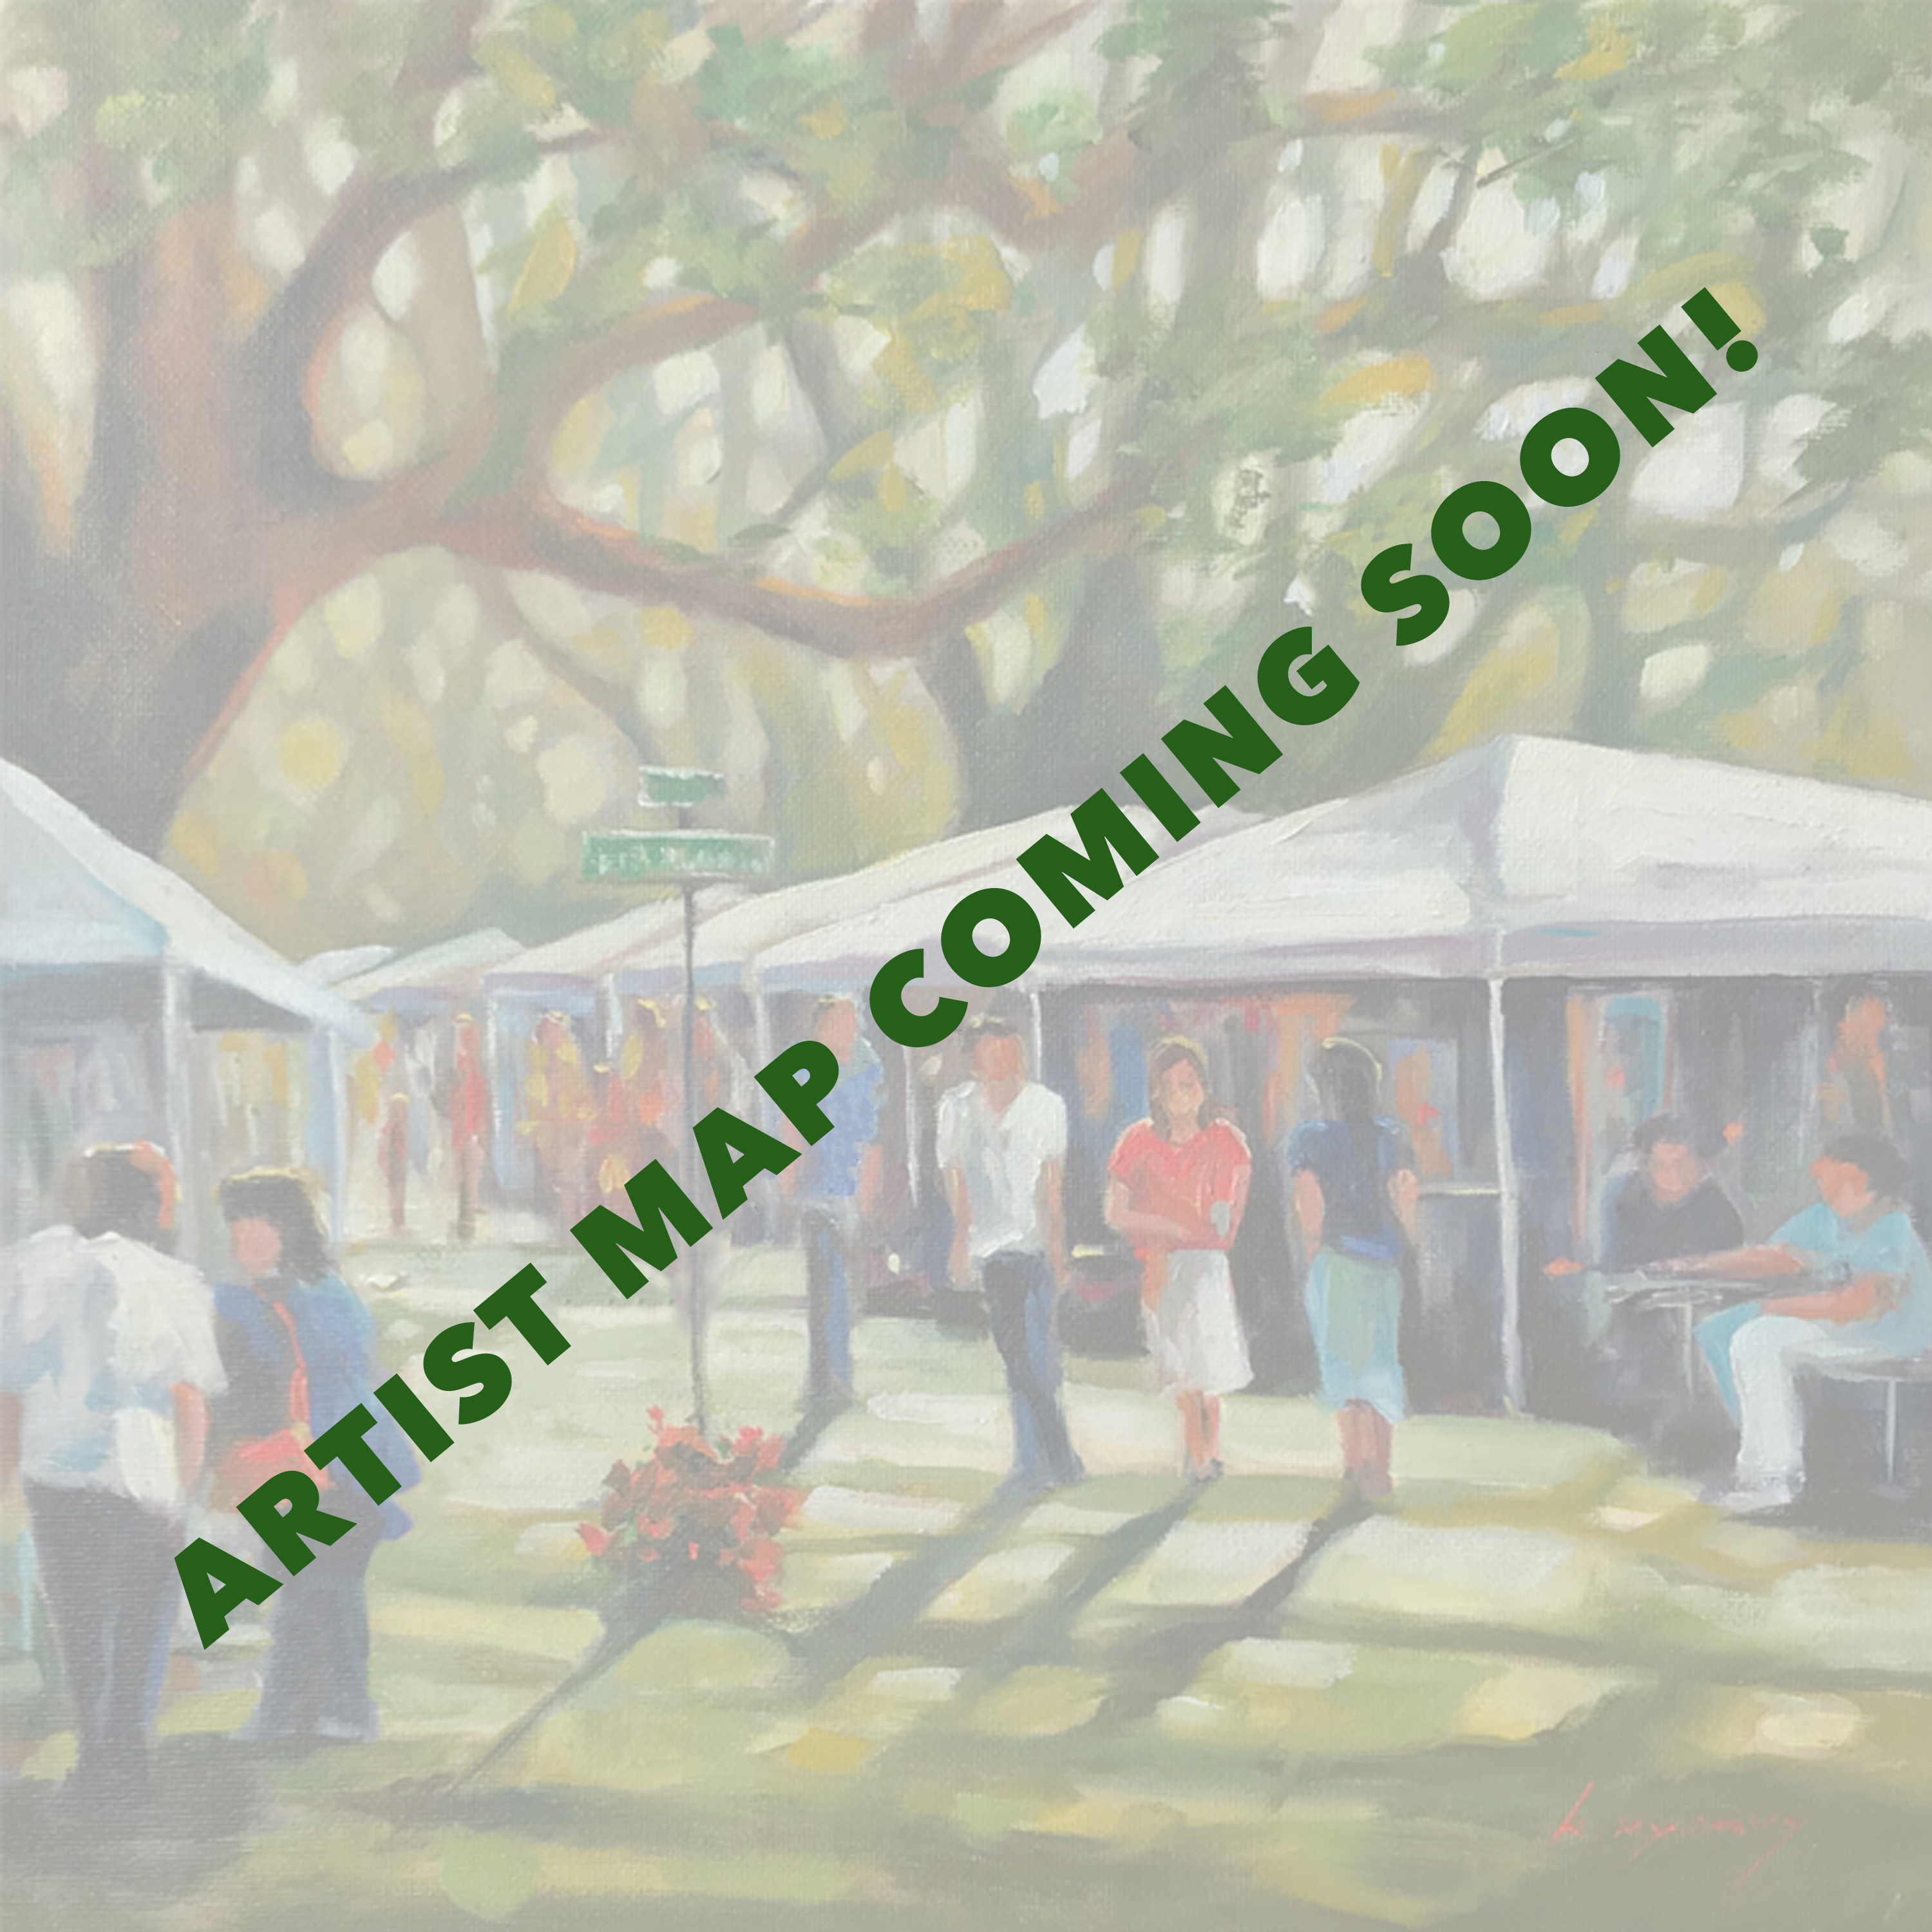 ARTIST MAP COMING SOON